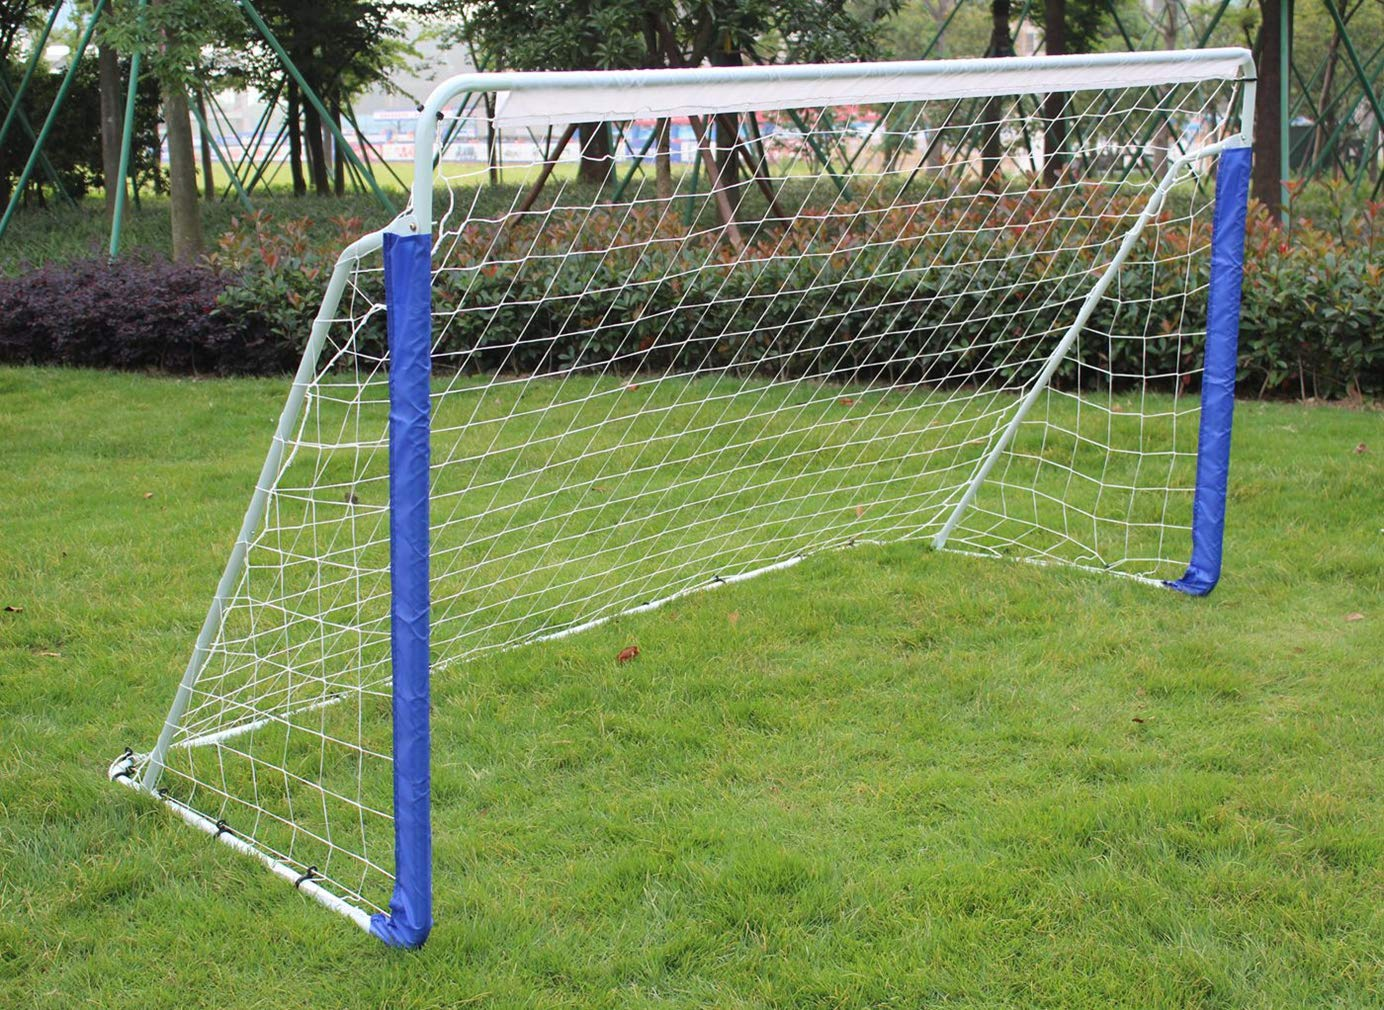 KLB Sport 8' x 5' Steel Soccer Goal - Portable Soccer Net with Carry Bag by KLB Sport (Image #1)